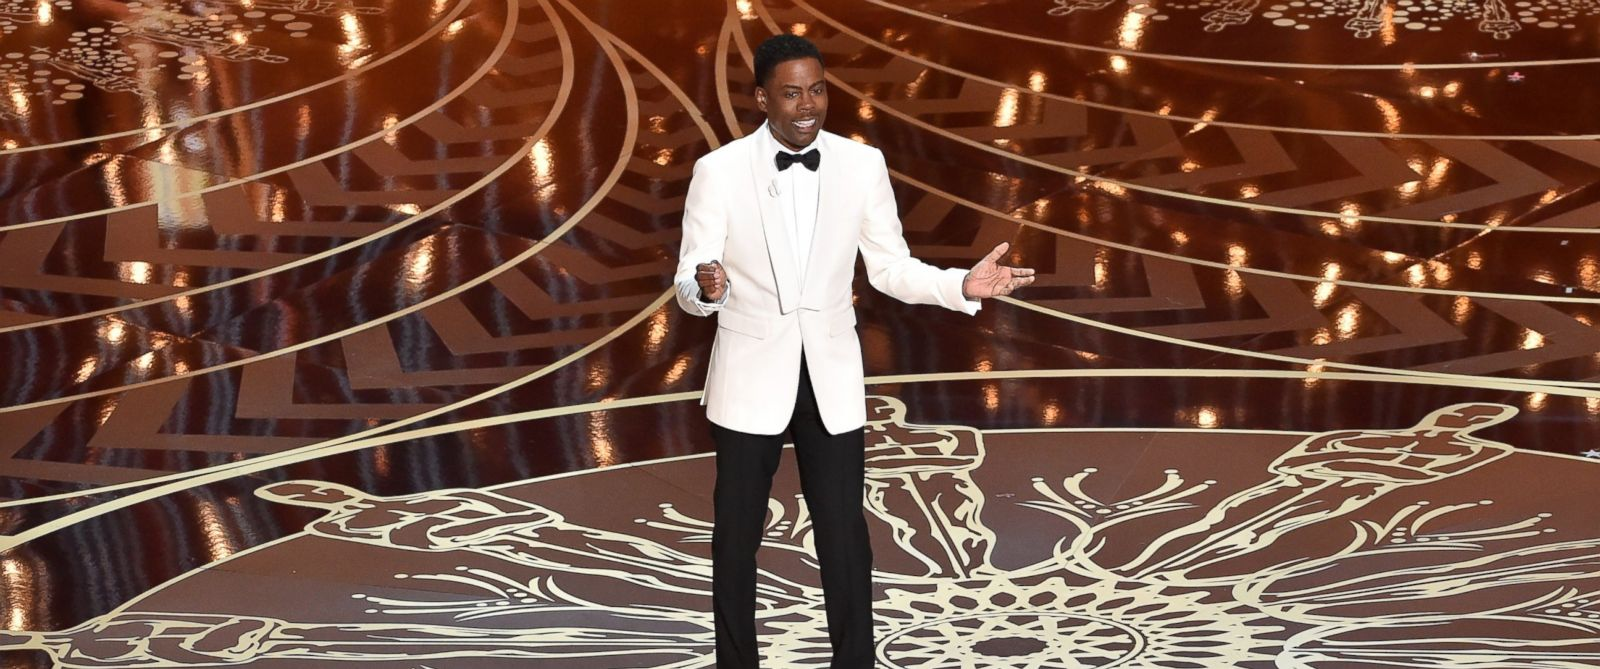 PHOTO: Chris Rock speaks onstage during the 88th Annual Academy Awards, Feb. 28, 2016, in Hollywood, California.